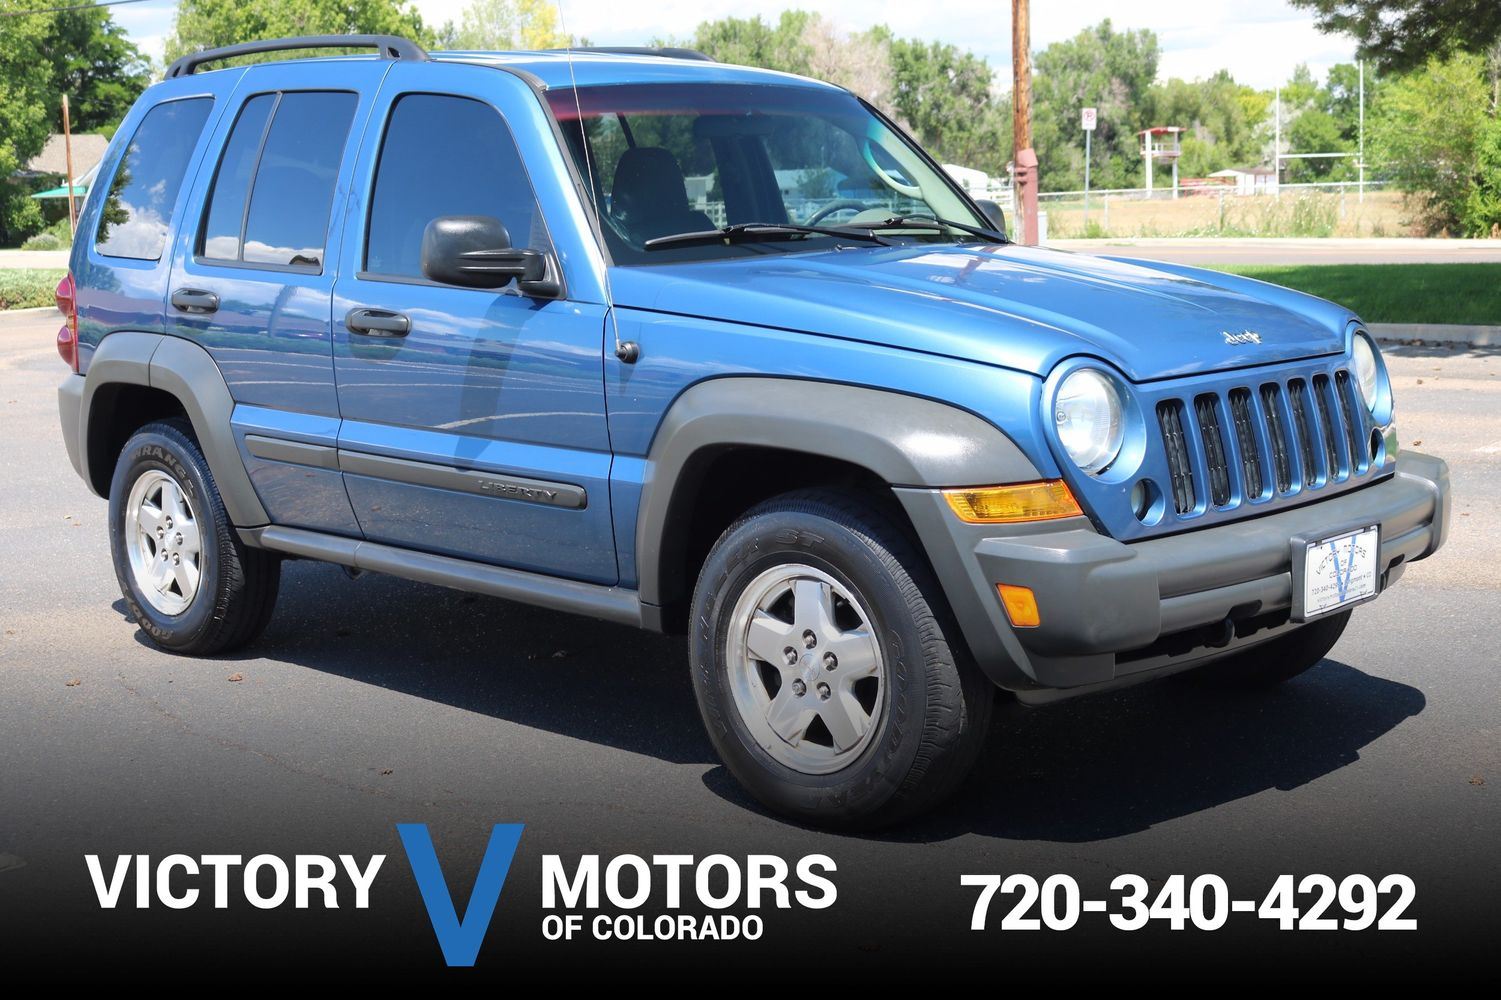 All Types liberty crd : 2006 Jeep Liberty Sport CRD | Victory Motors of Colorado